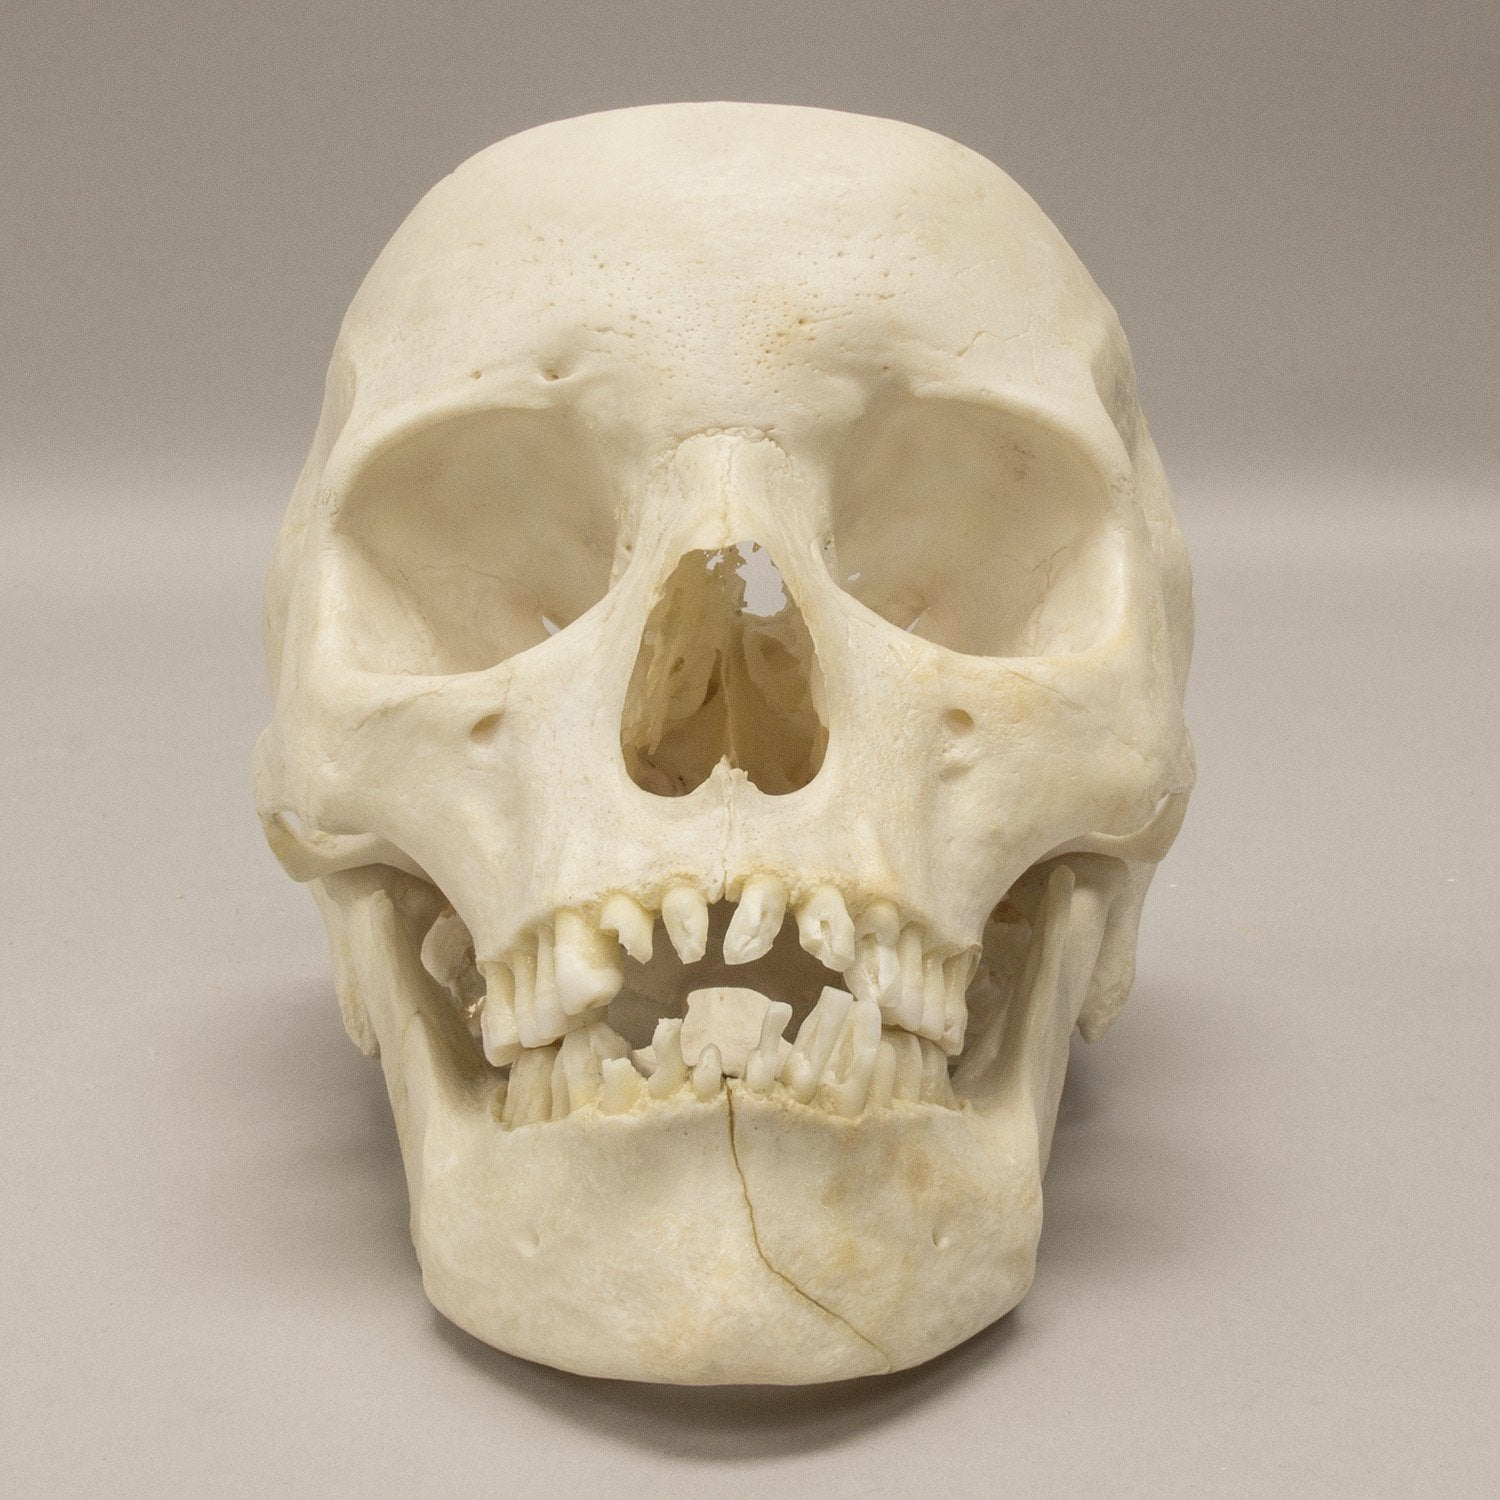 Real Human Skull For Sale Skulls Unlimited International Inc